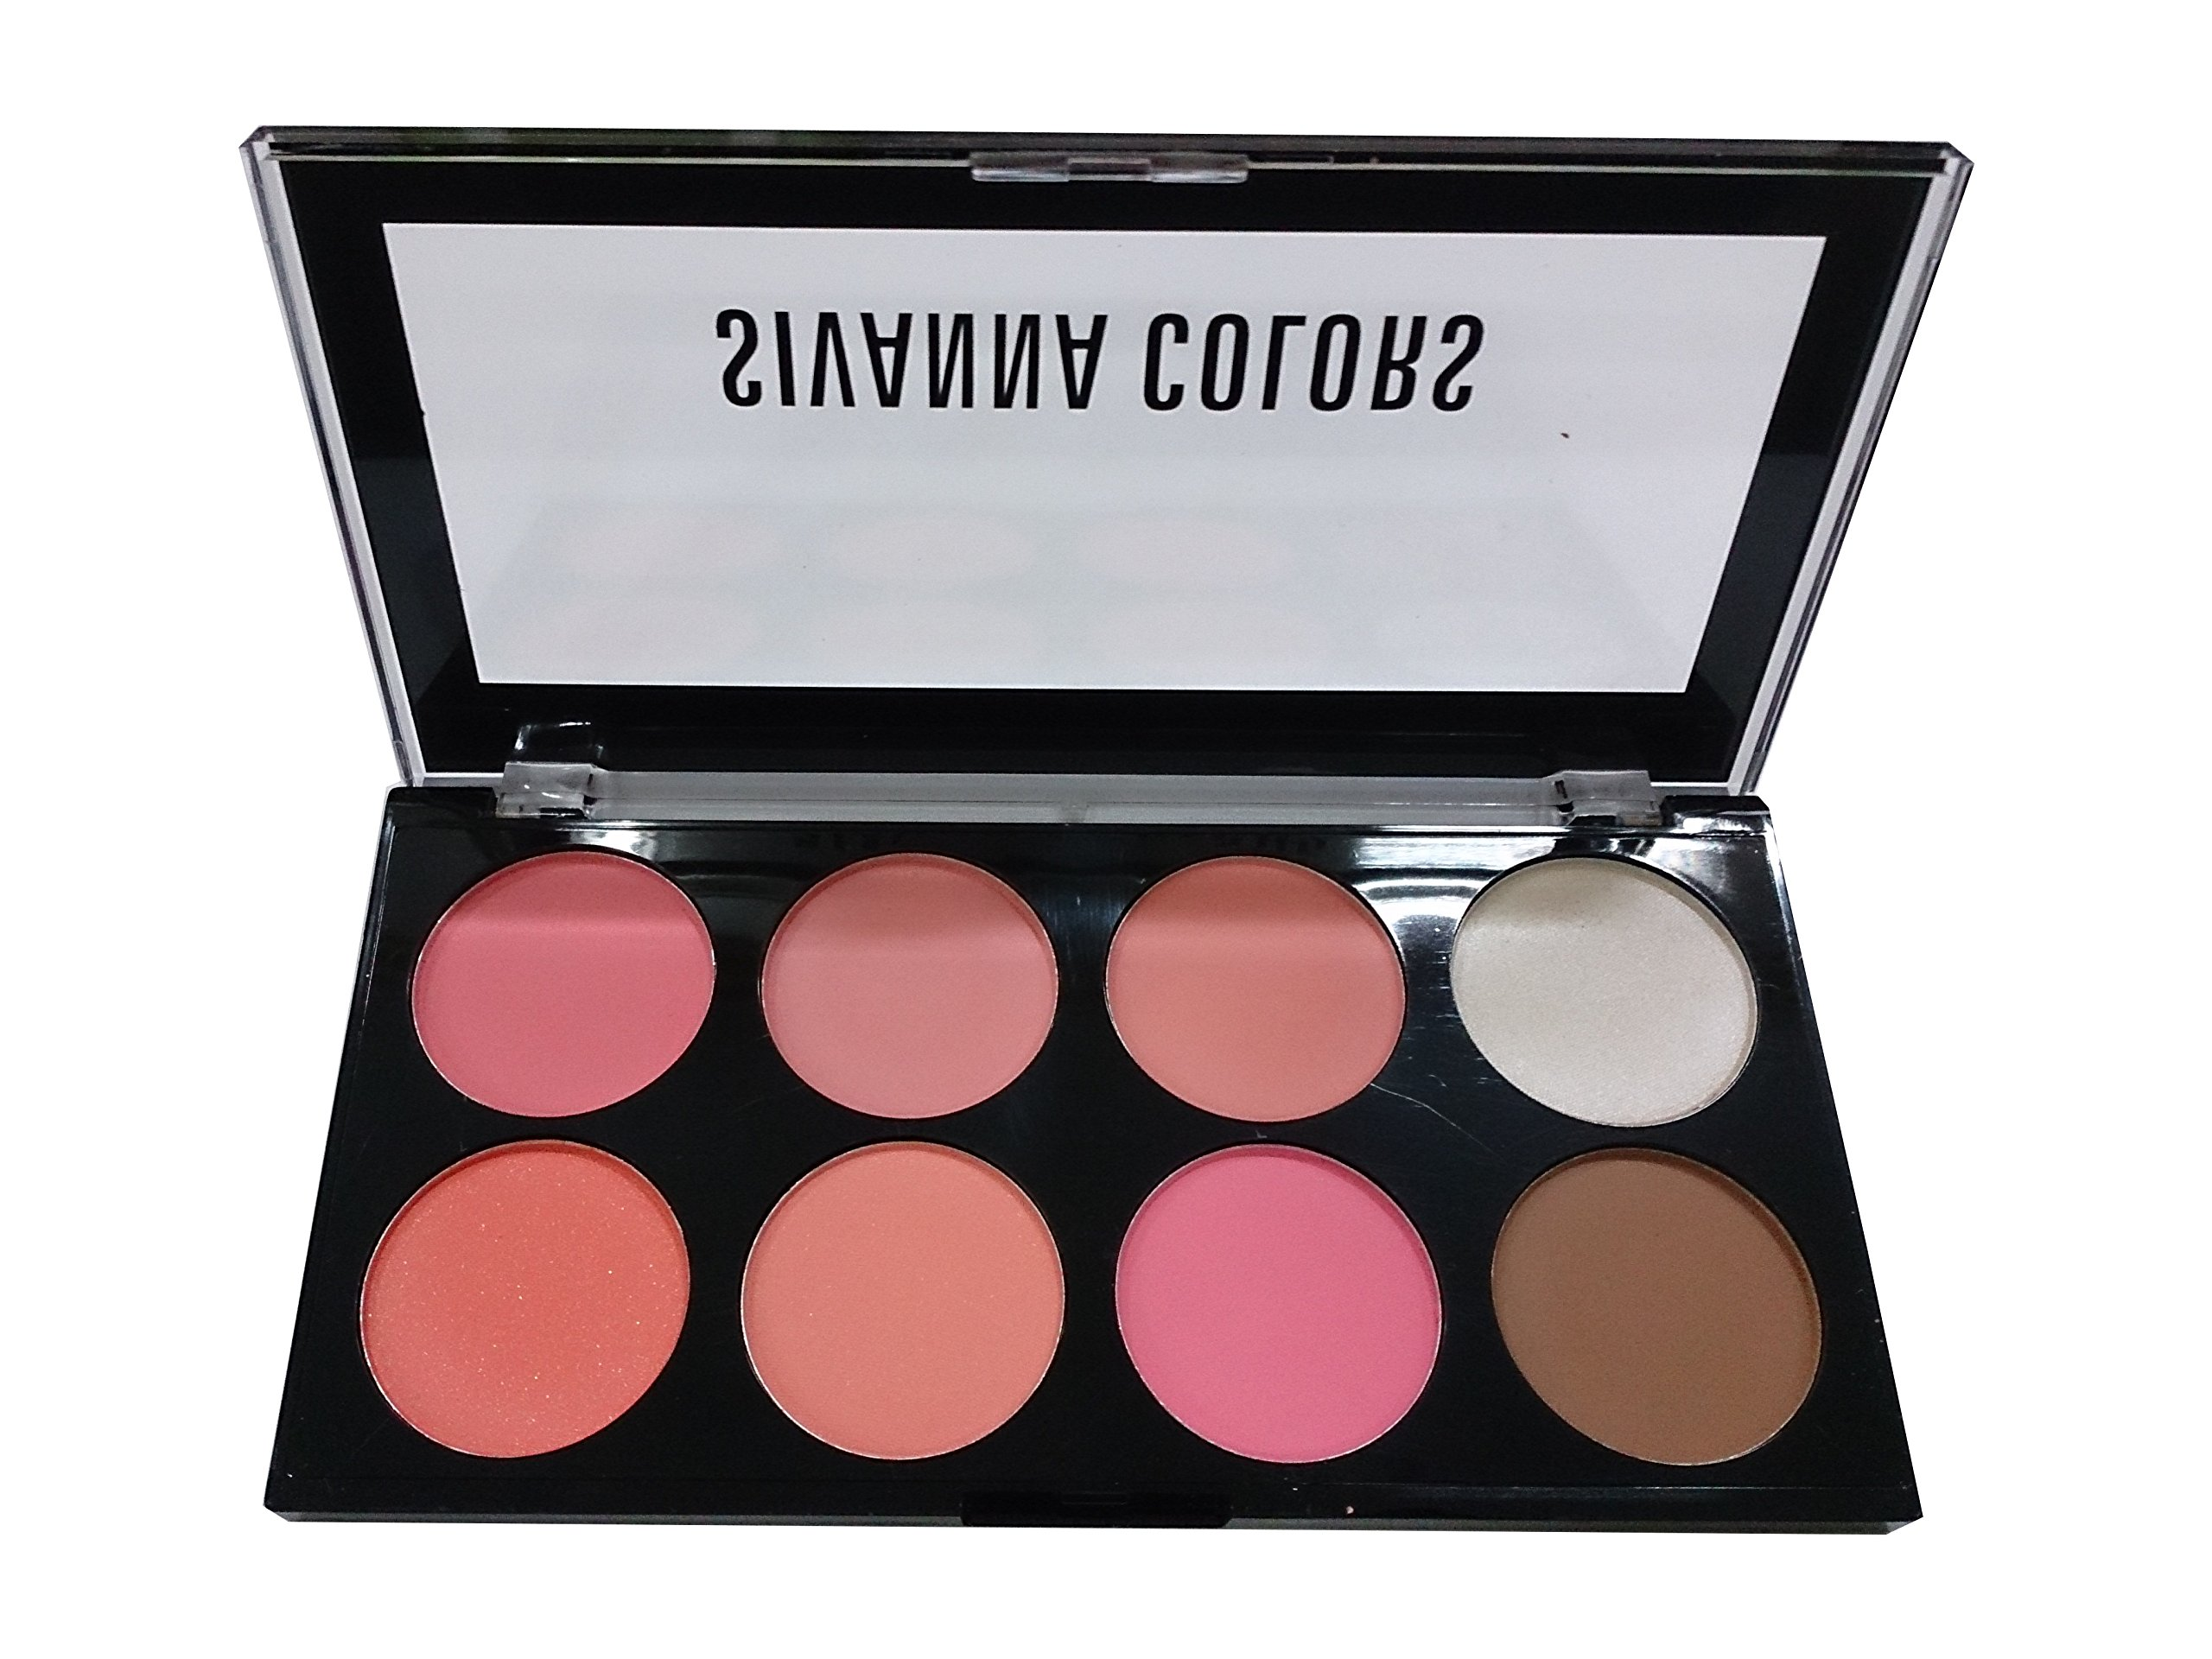 Sivanna Ultra Blush Palette product image